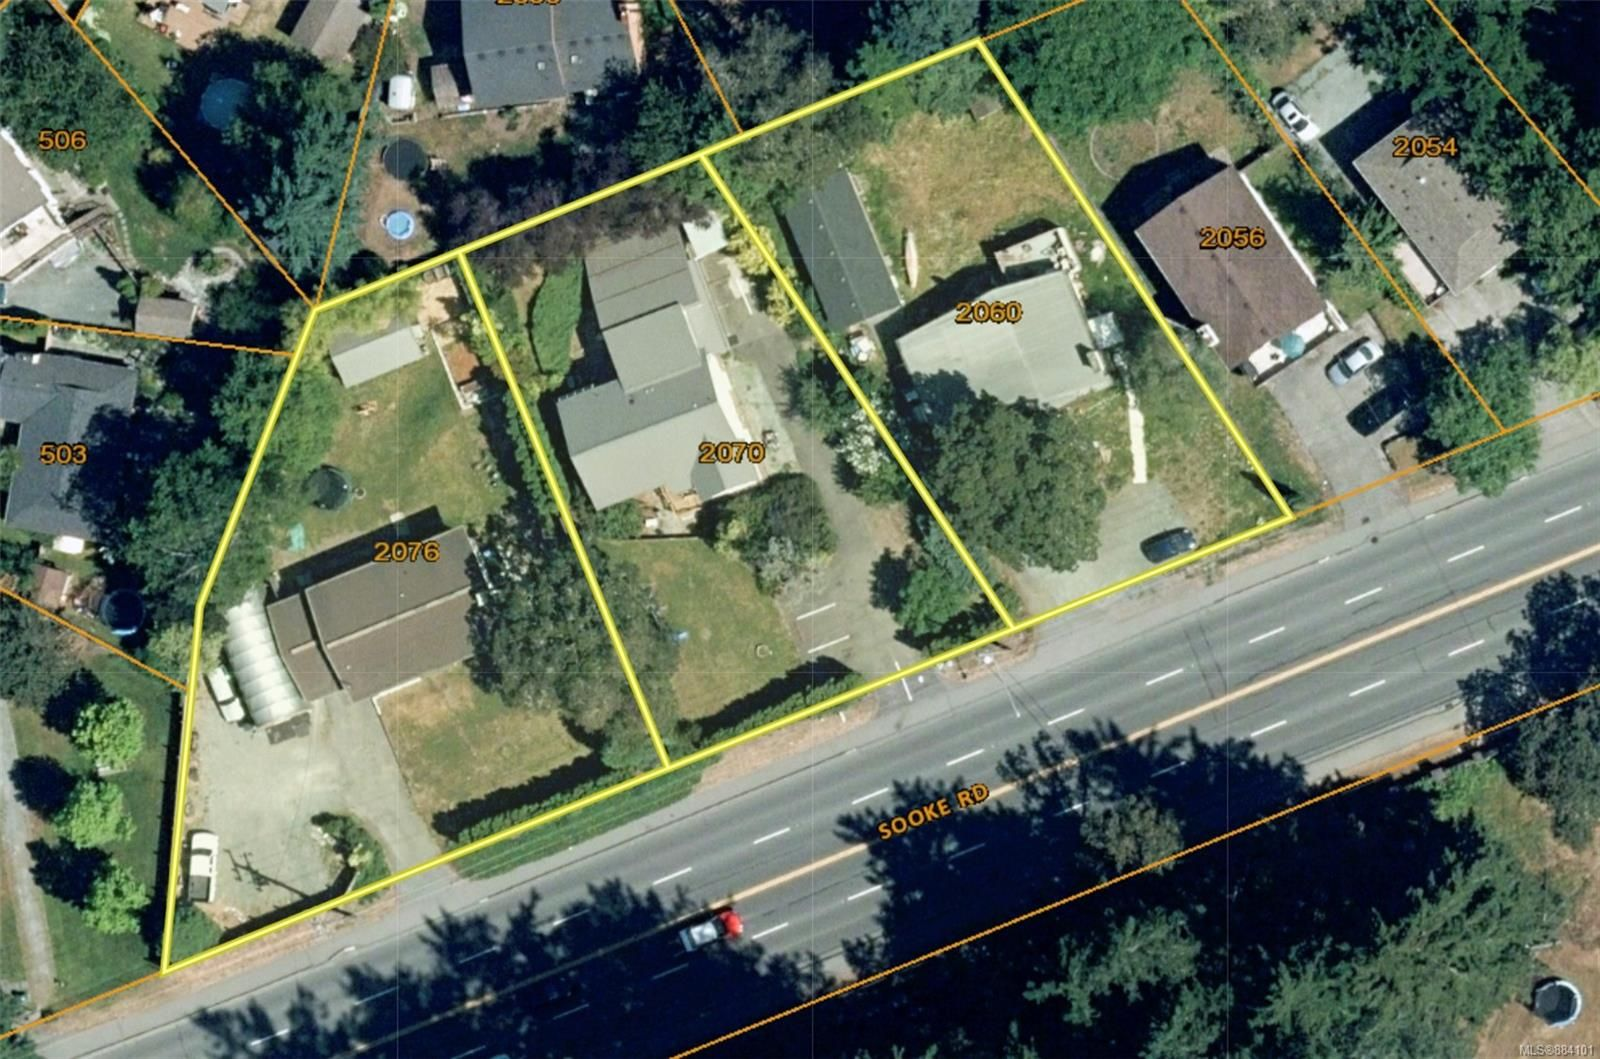 Main Photo: 2076 Sooke Rd in : Co Hatley Park Unimproved Land for sale (Colwood)  : MLS®# 884101